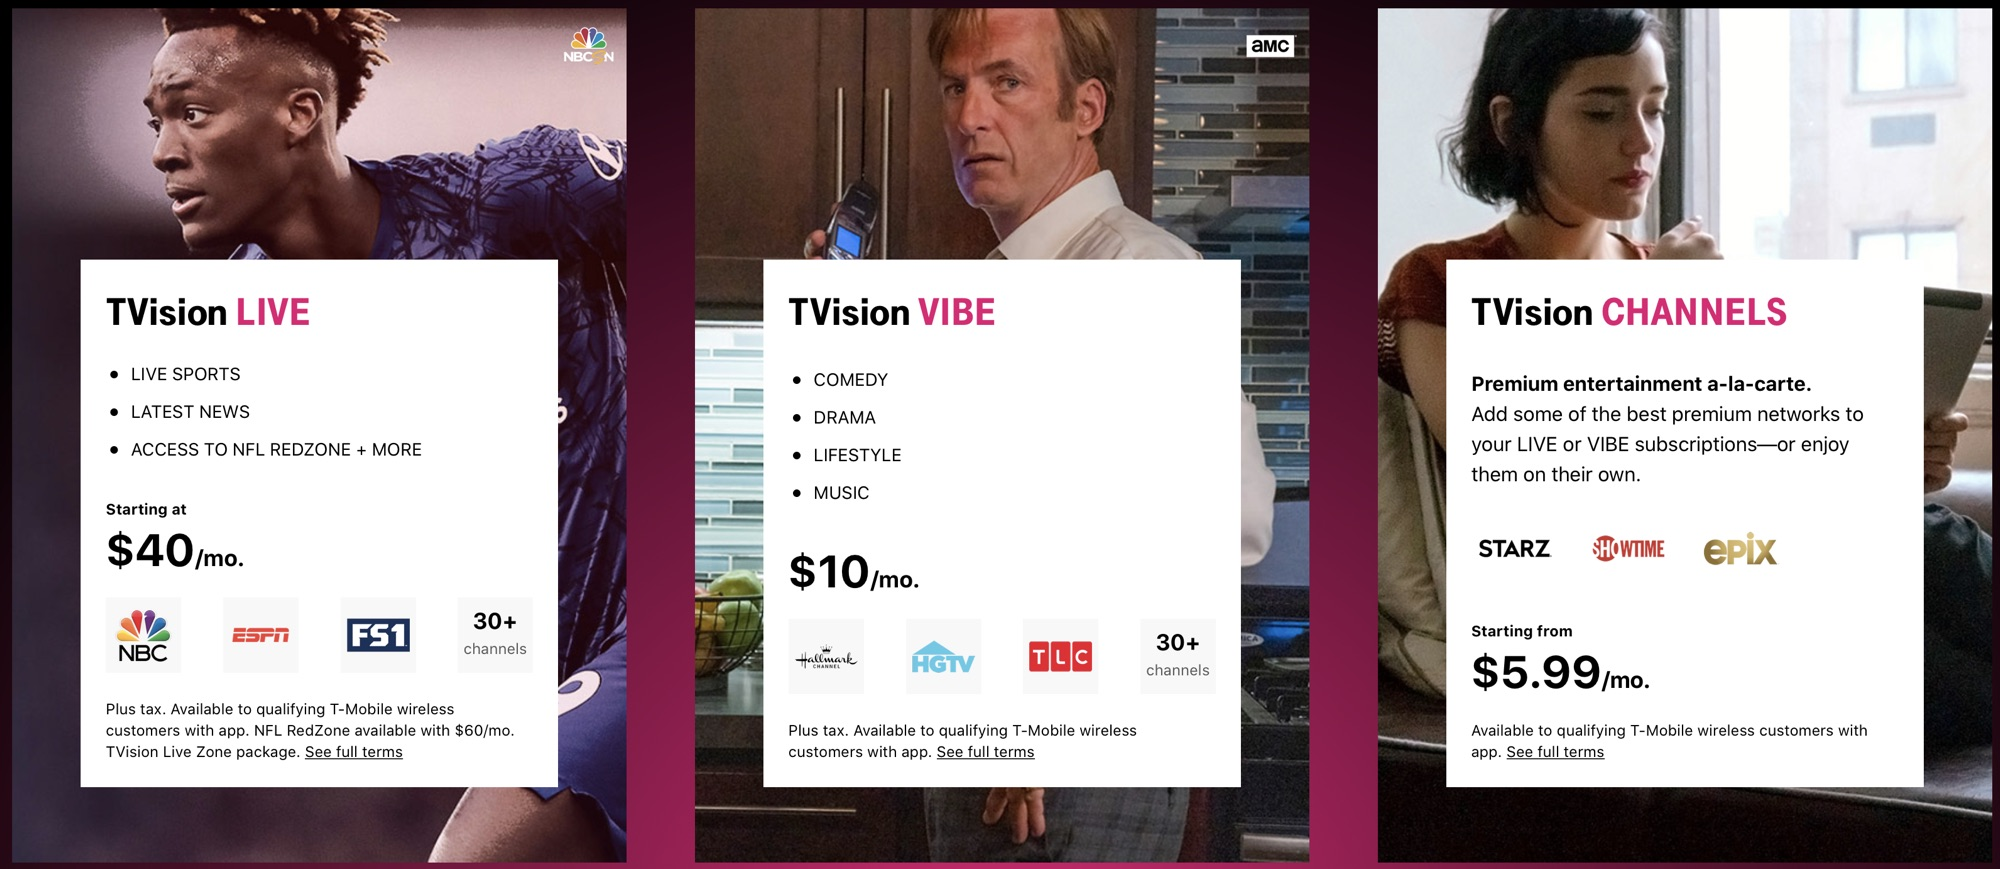 T-Mobile Announces New TVision Streaming Service, Offers Free Apple TV+ With Subscription